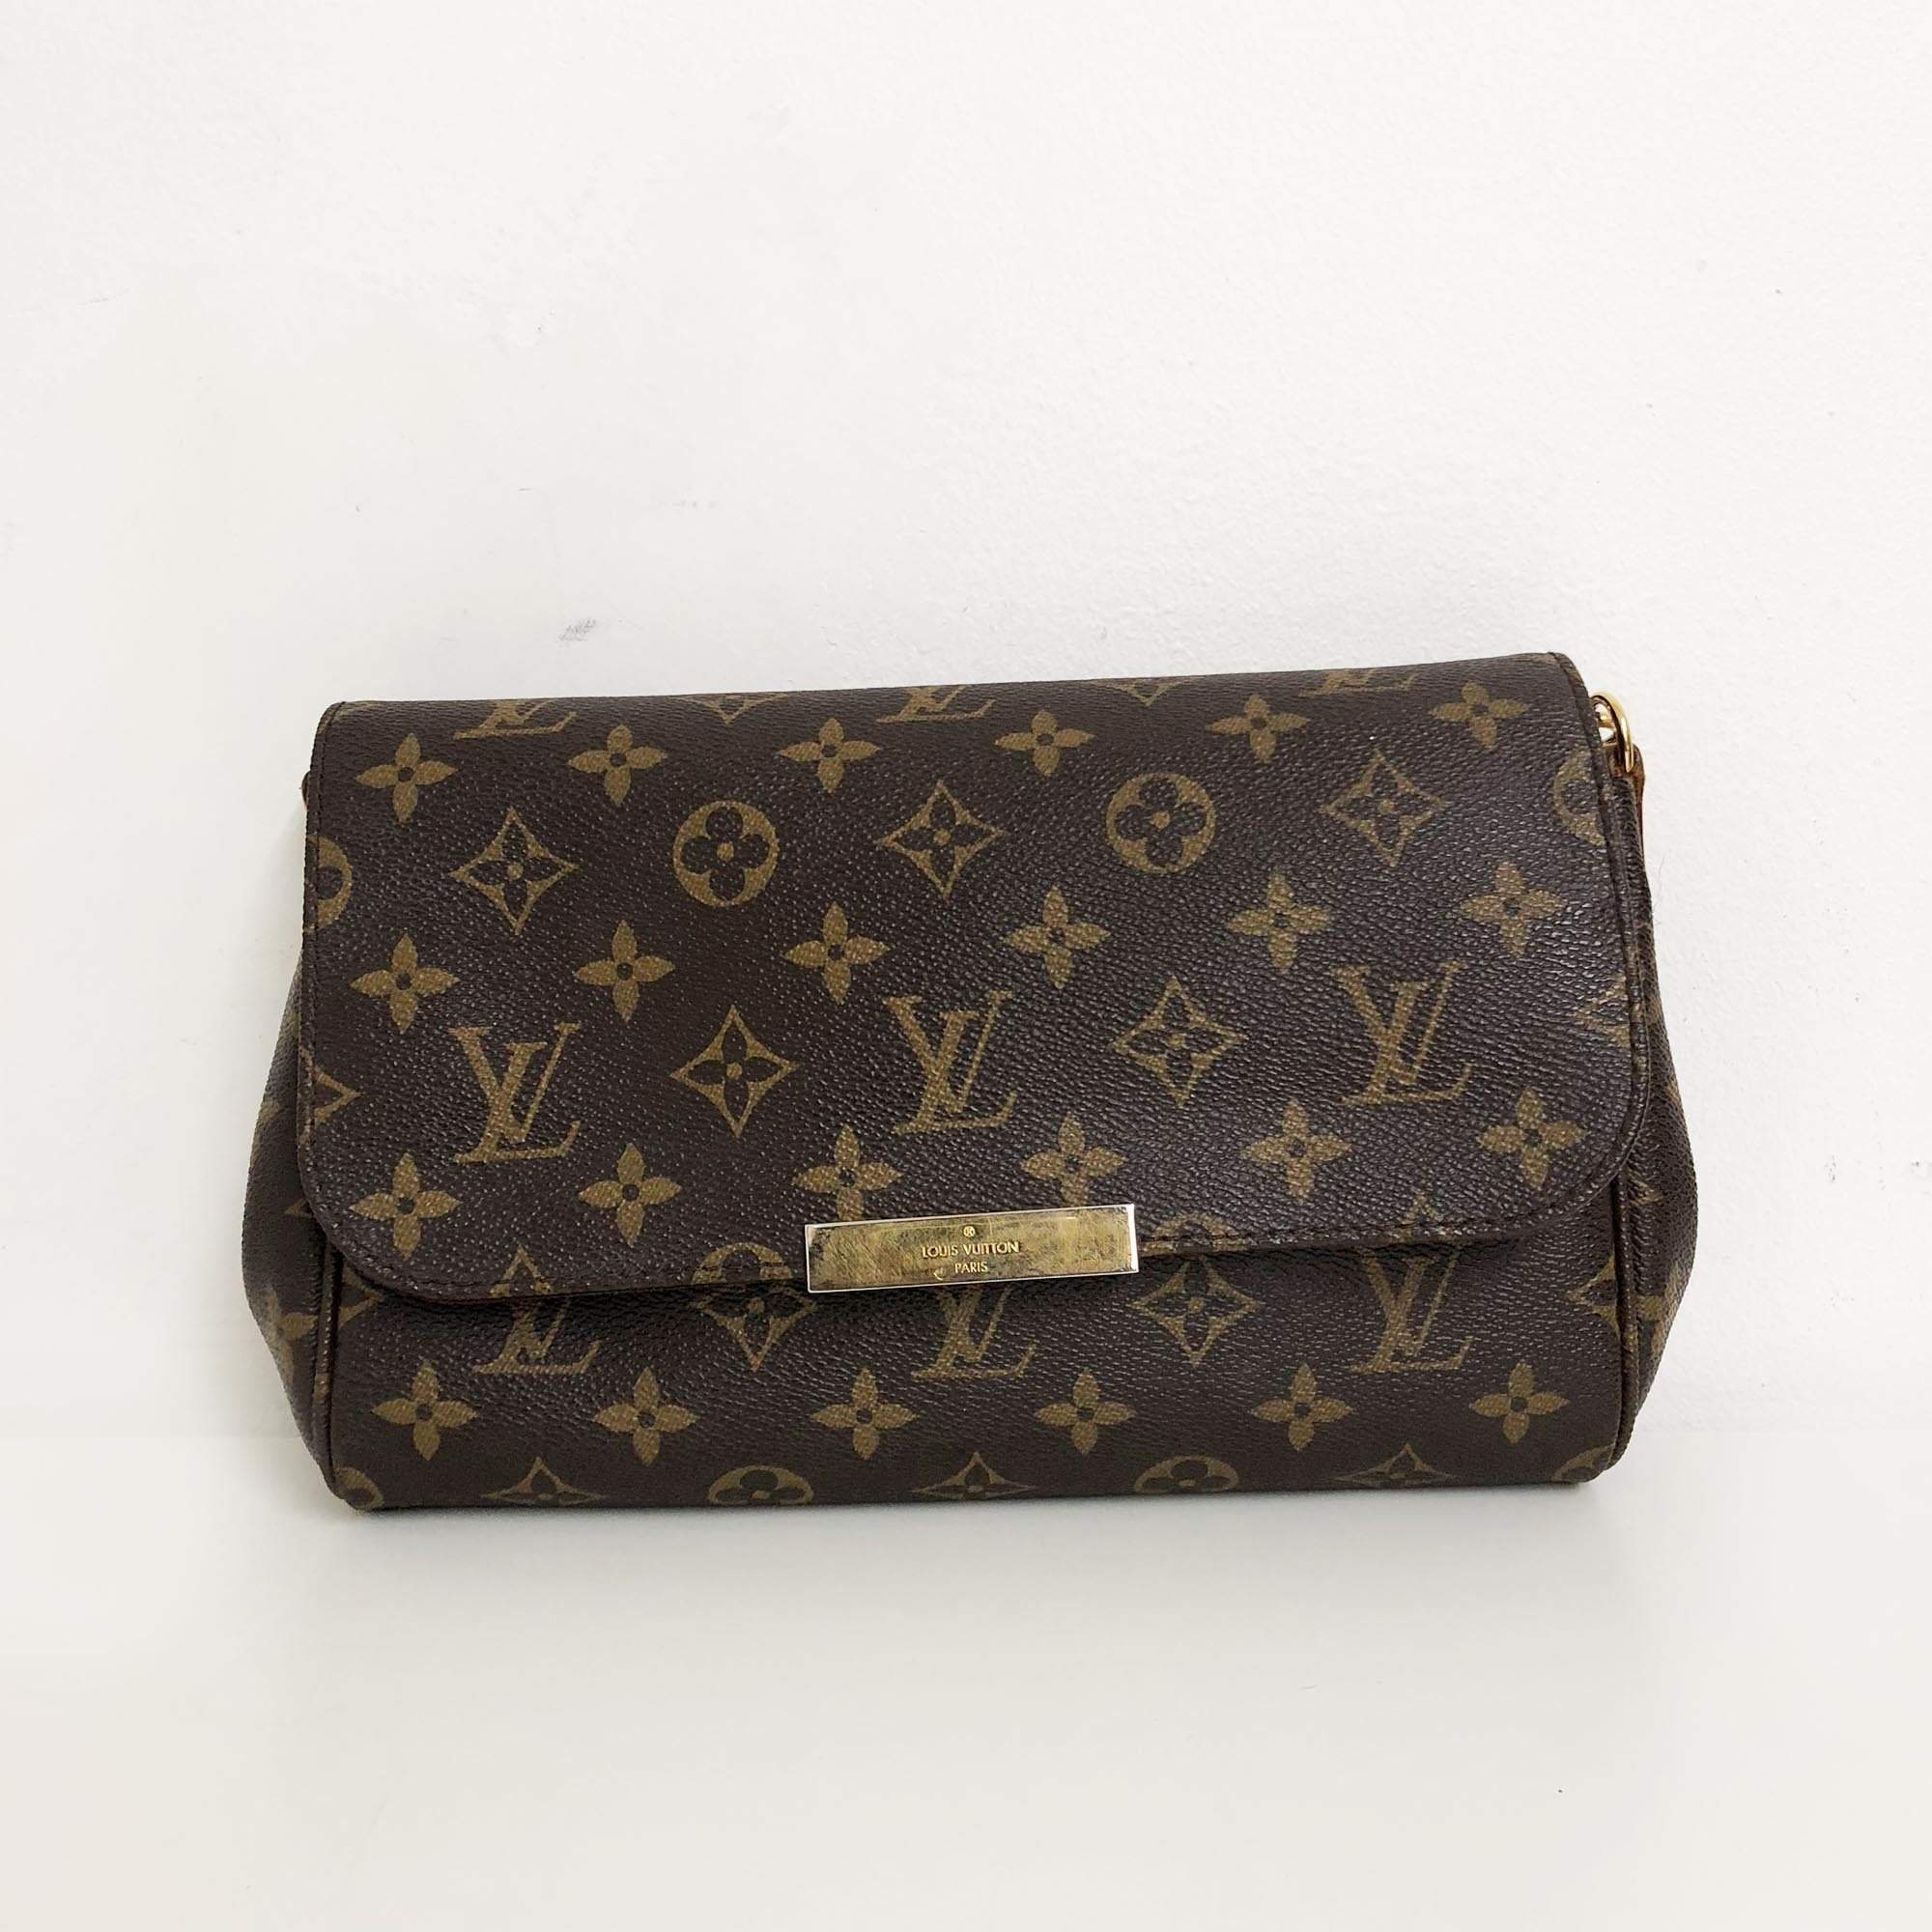 84f0a03a57e2 Louis Vuitton Monogram Favorite MM Bag – Garderobe